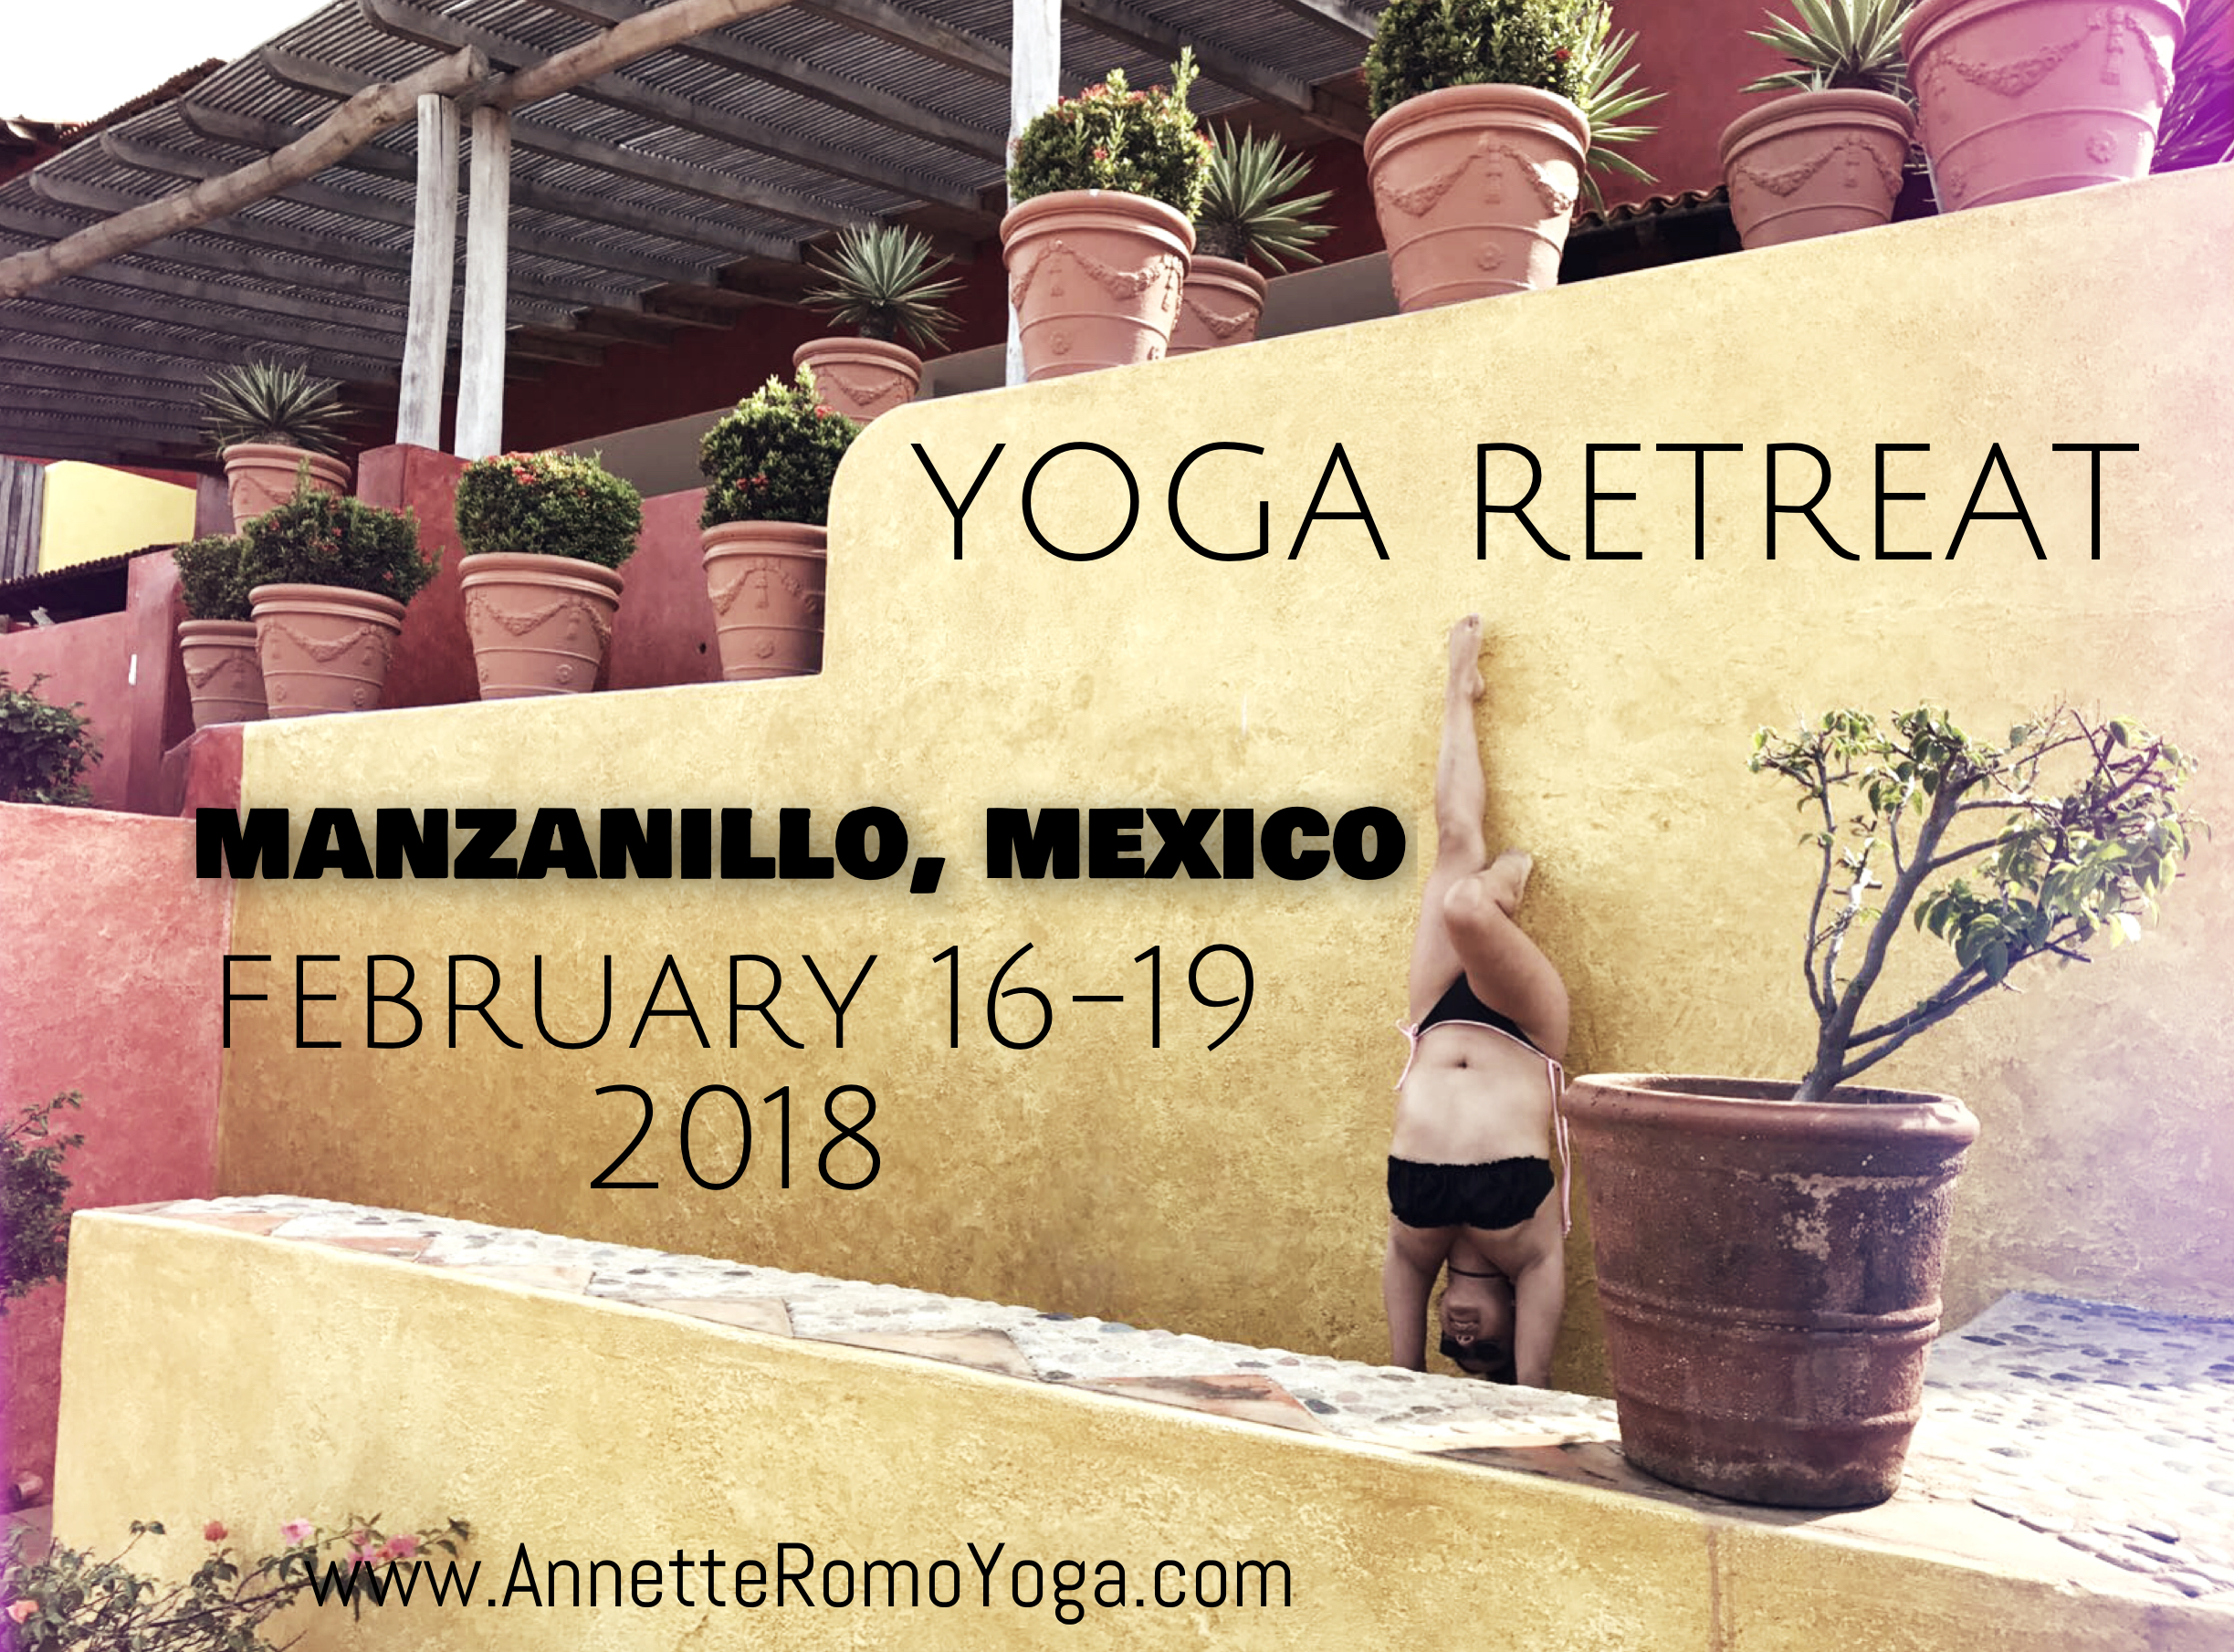 Annette Romo Yoga Retreat.JPG